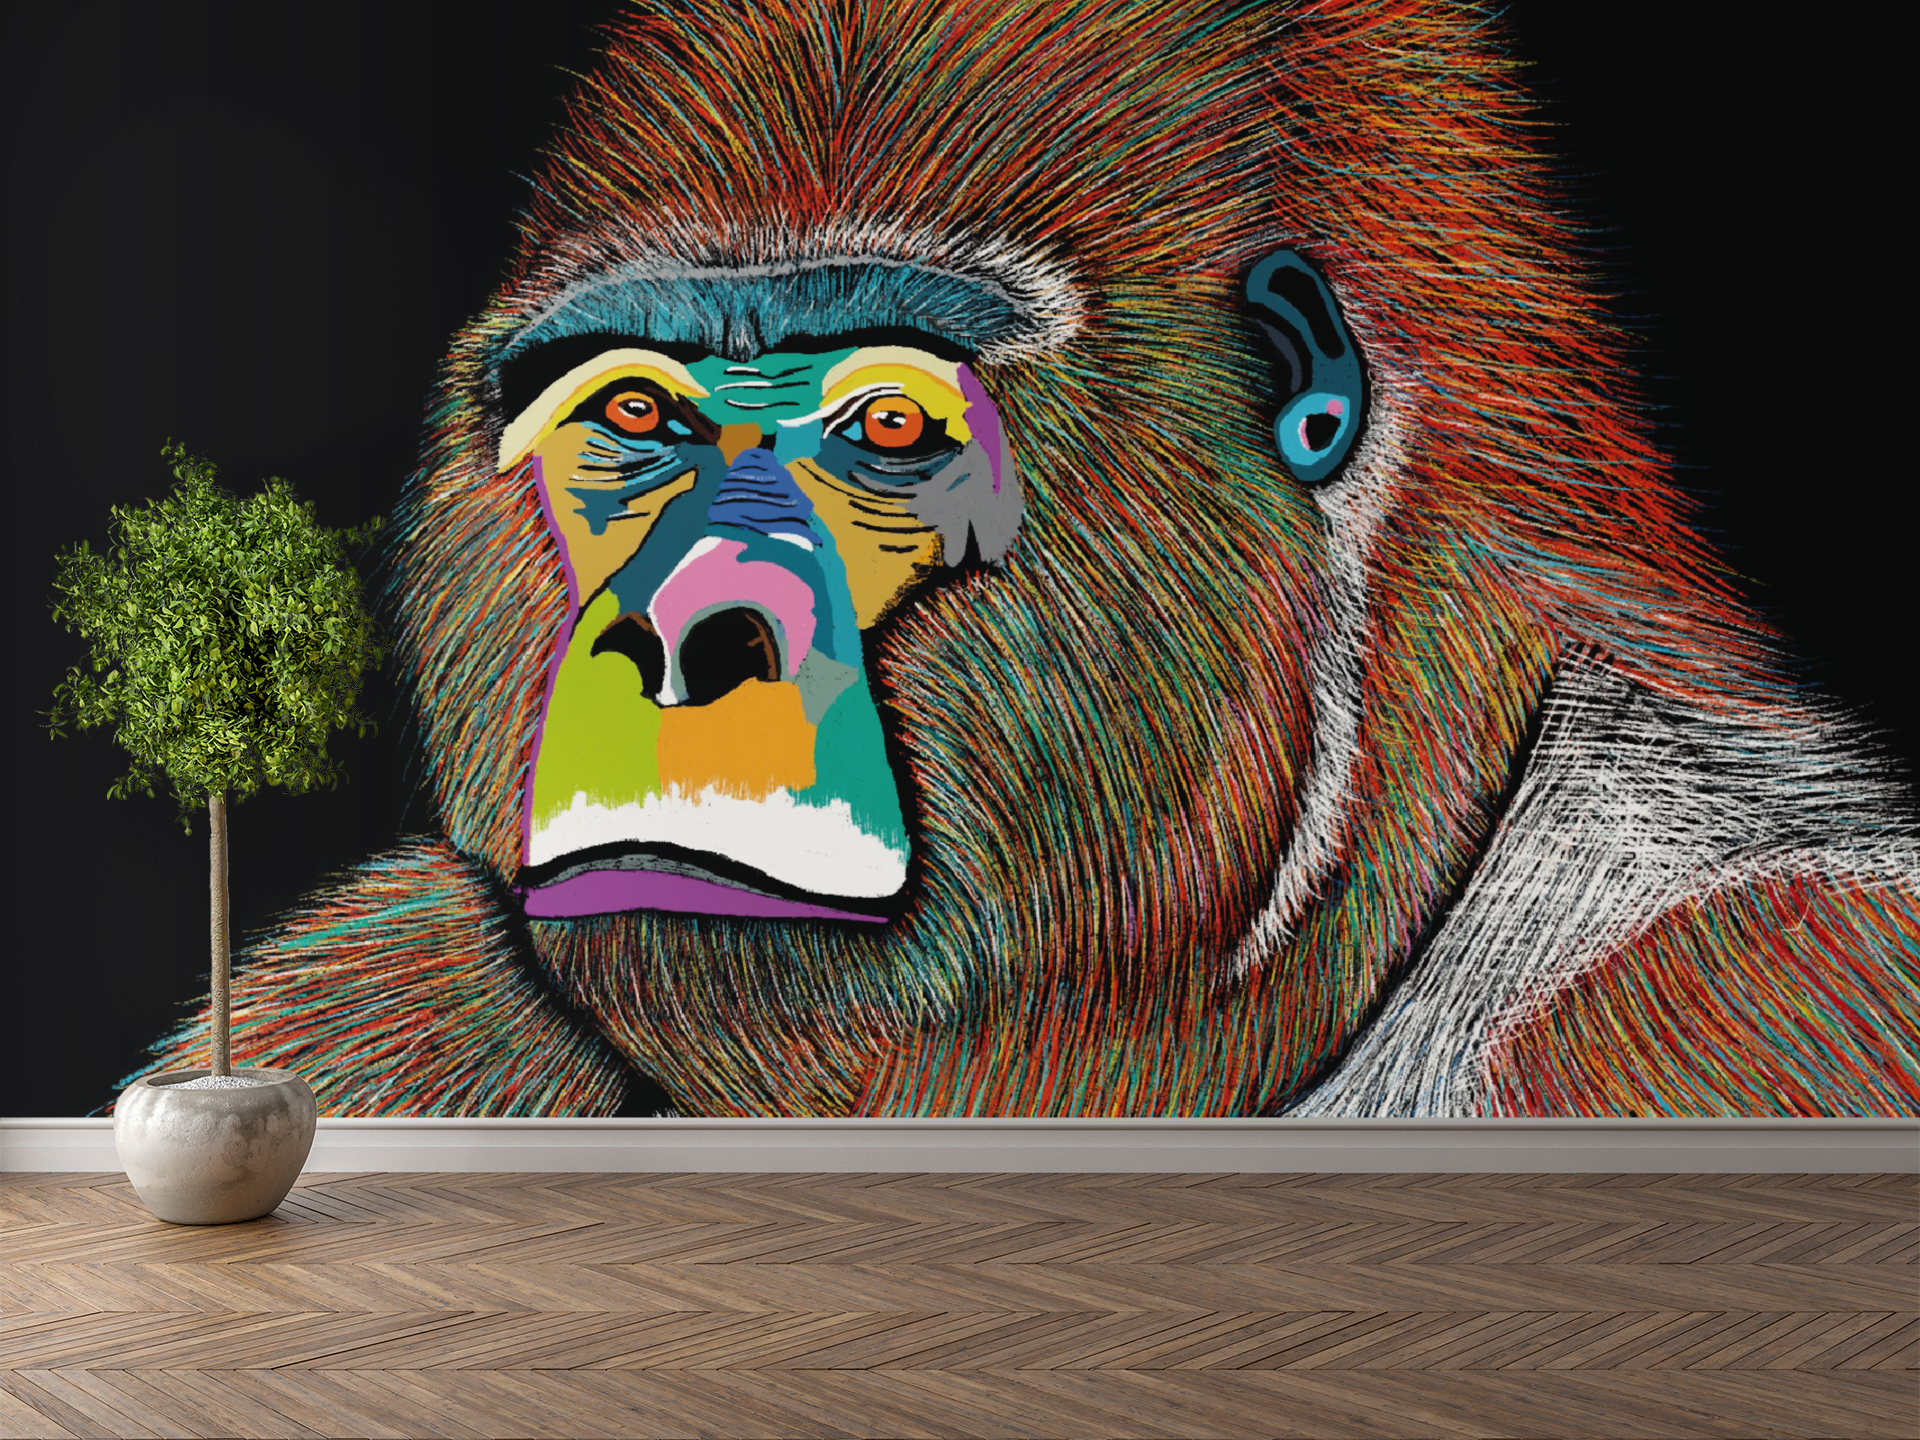 Silver The Gorilla Wall Sticker 3m x 2m